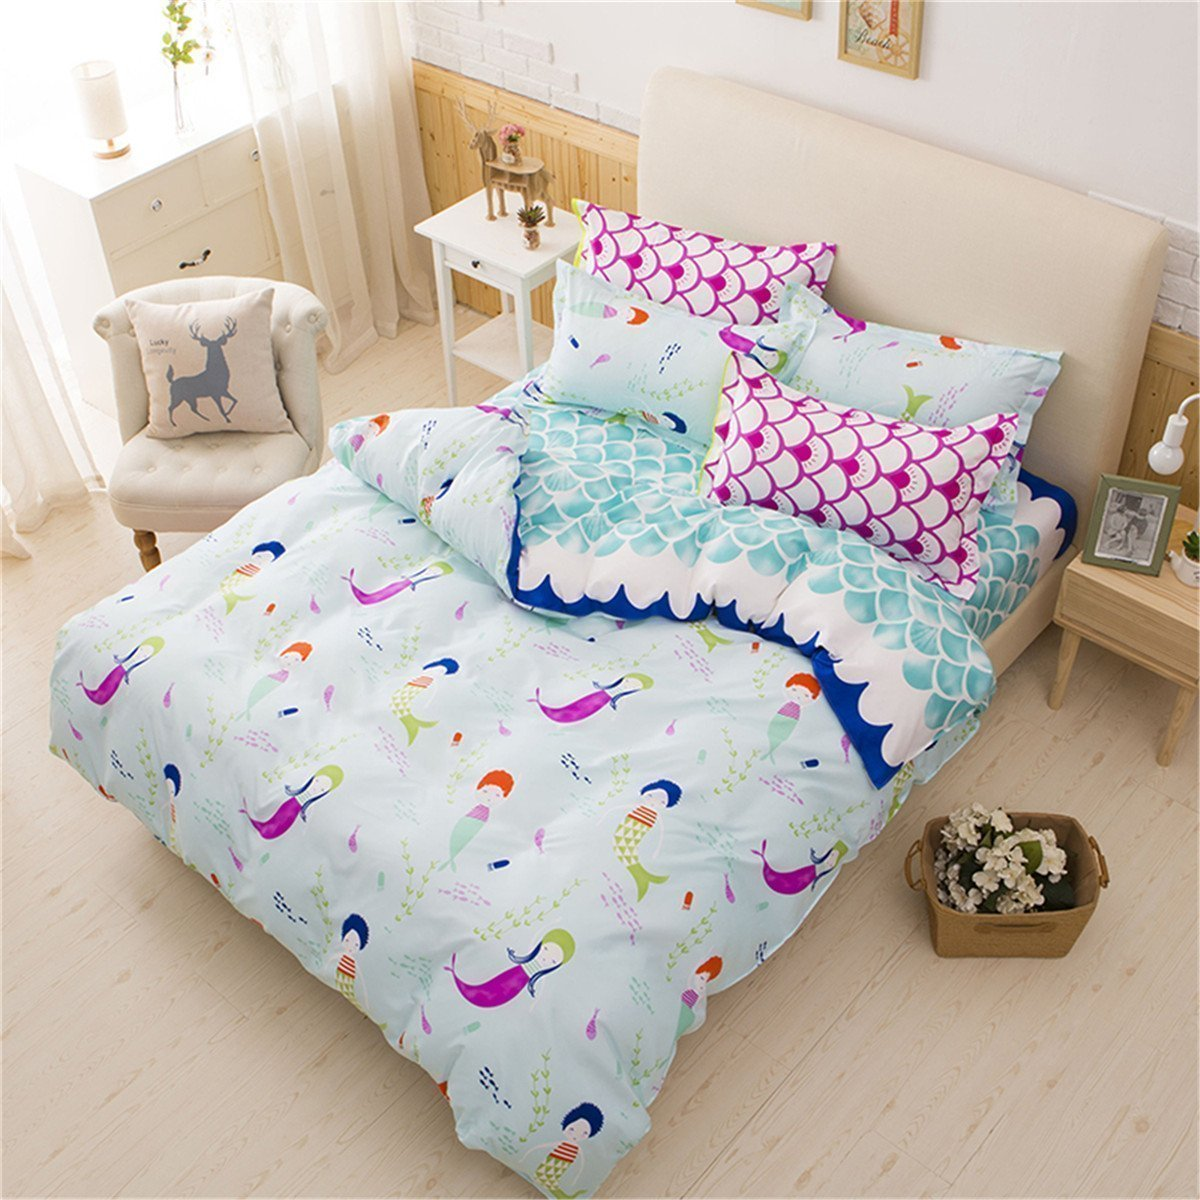 LemonTree Mermaid Bedding Set - Girls Soft Bedding Collection - Blue Wave Small Mermaid